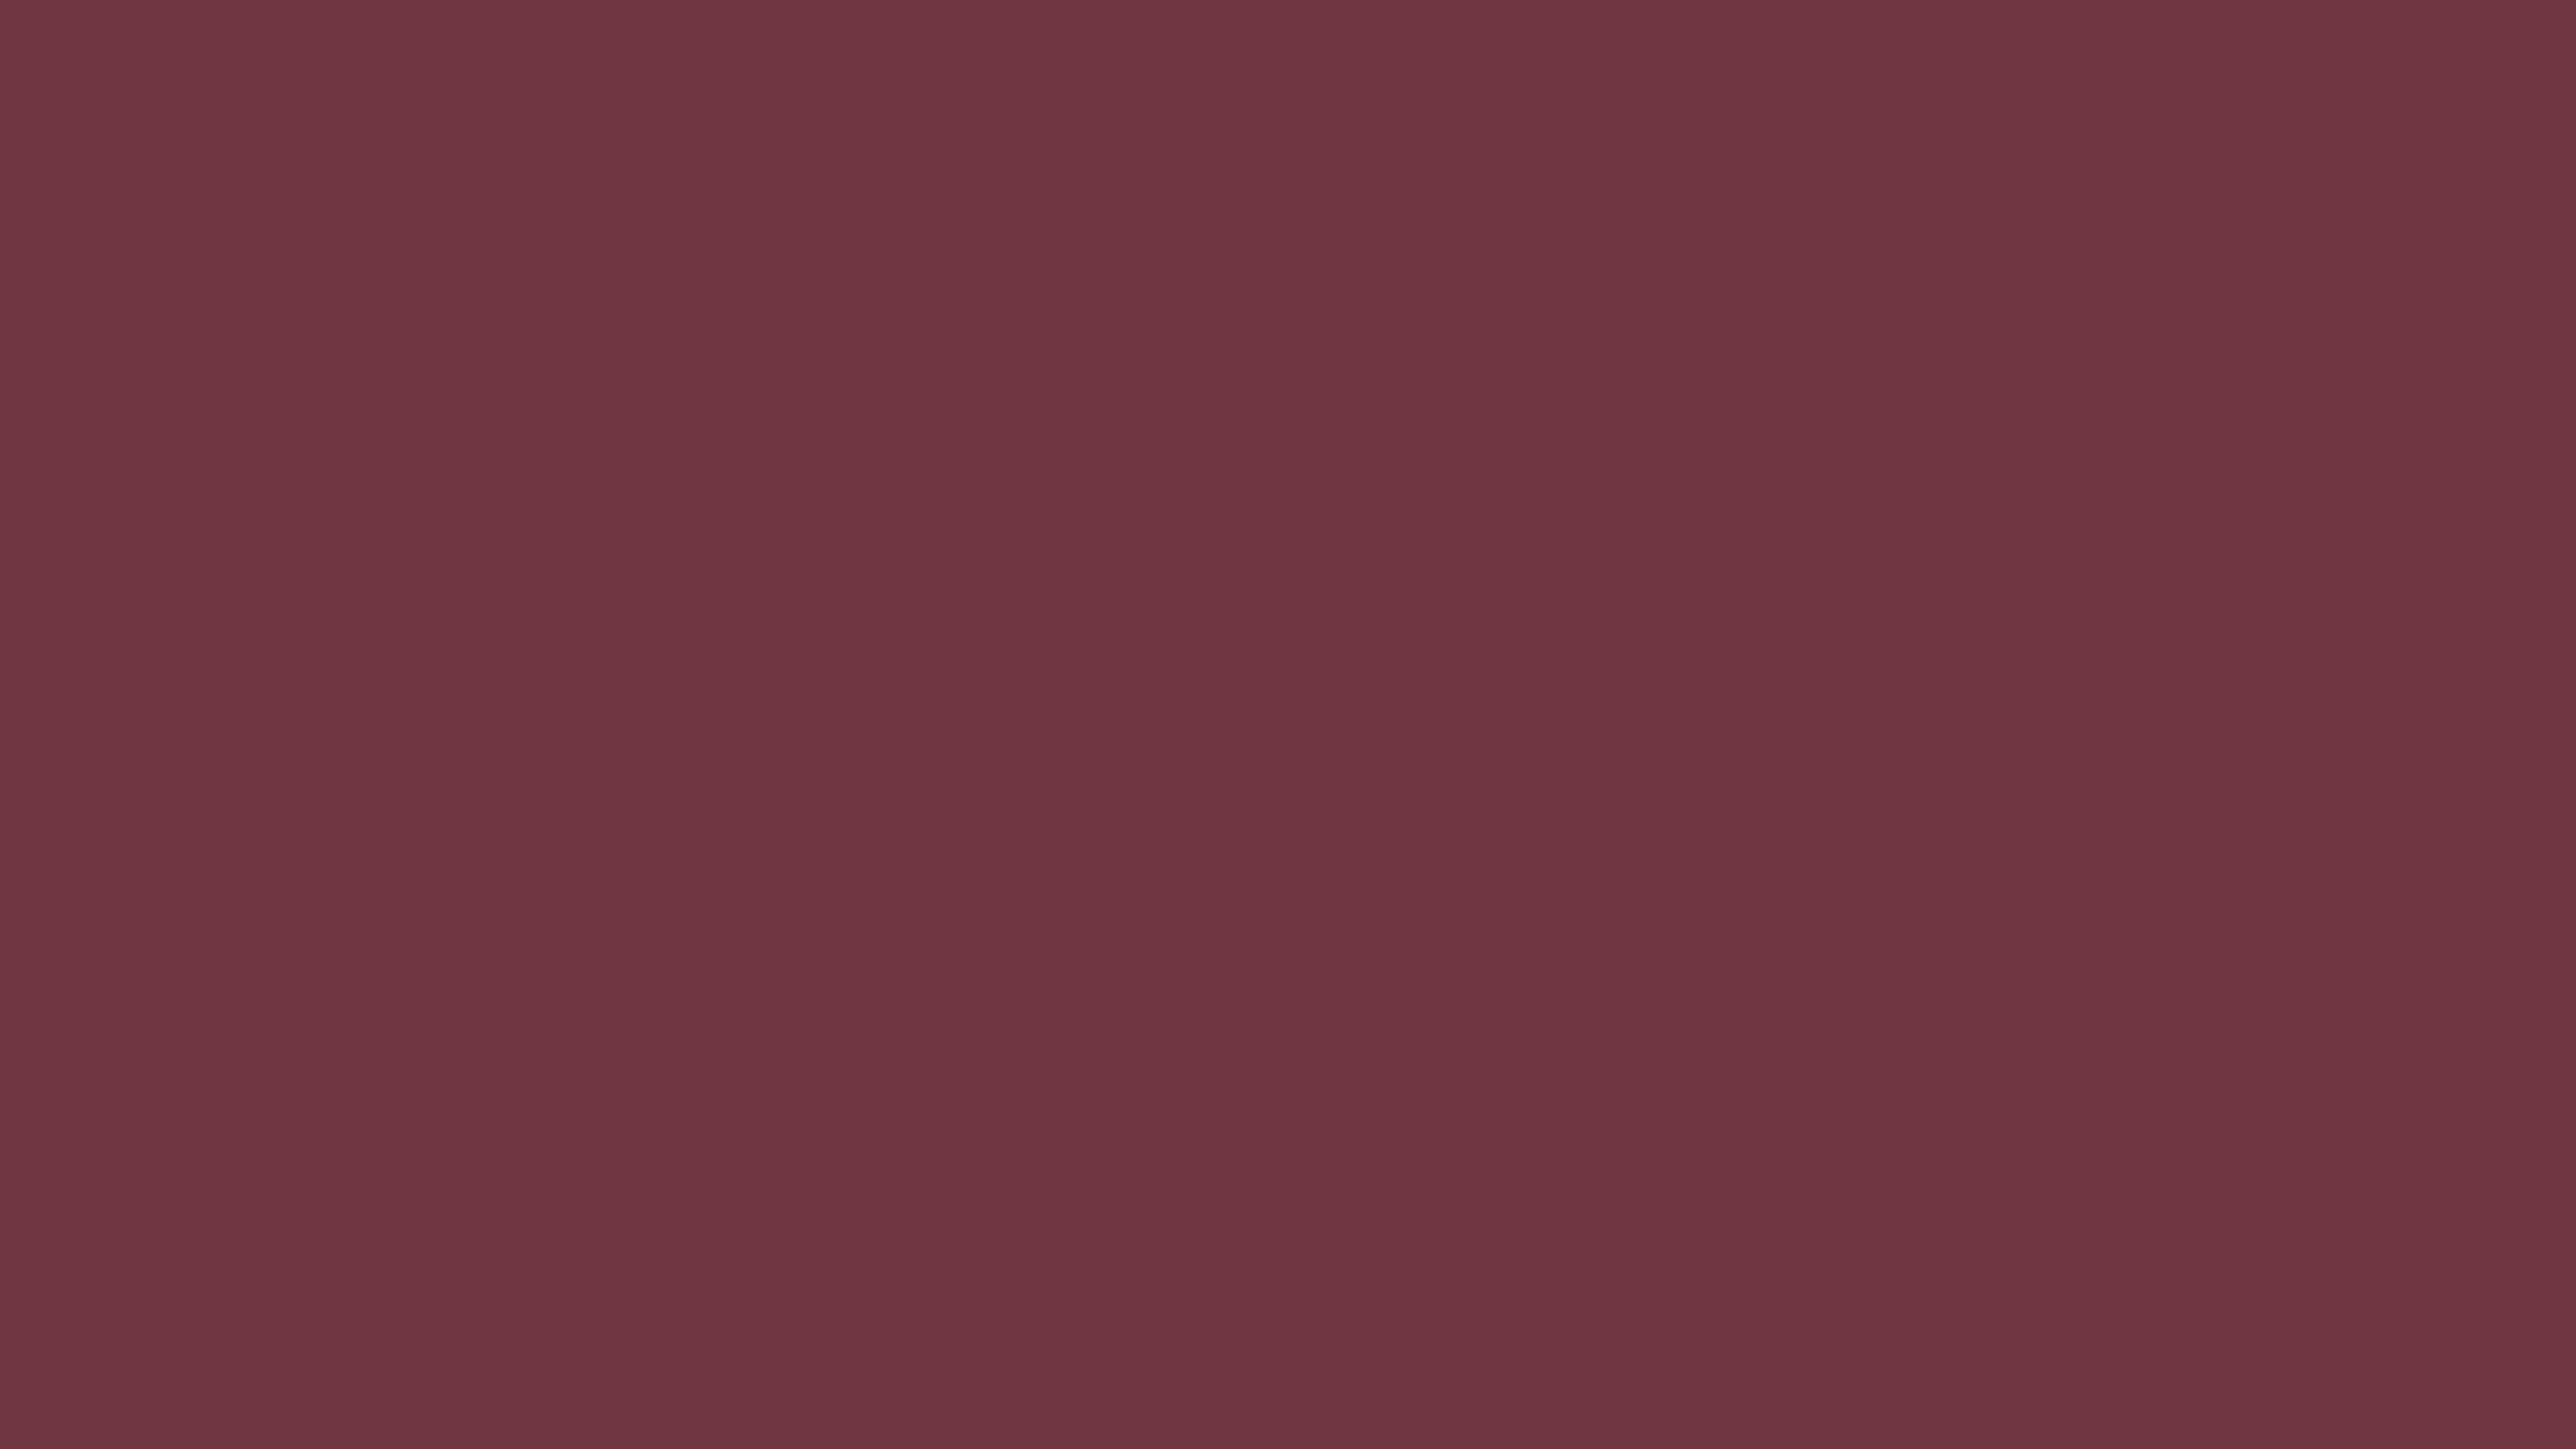 4096x2304 Catawba Solid Color Background